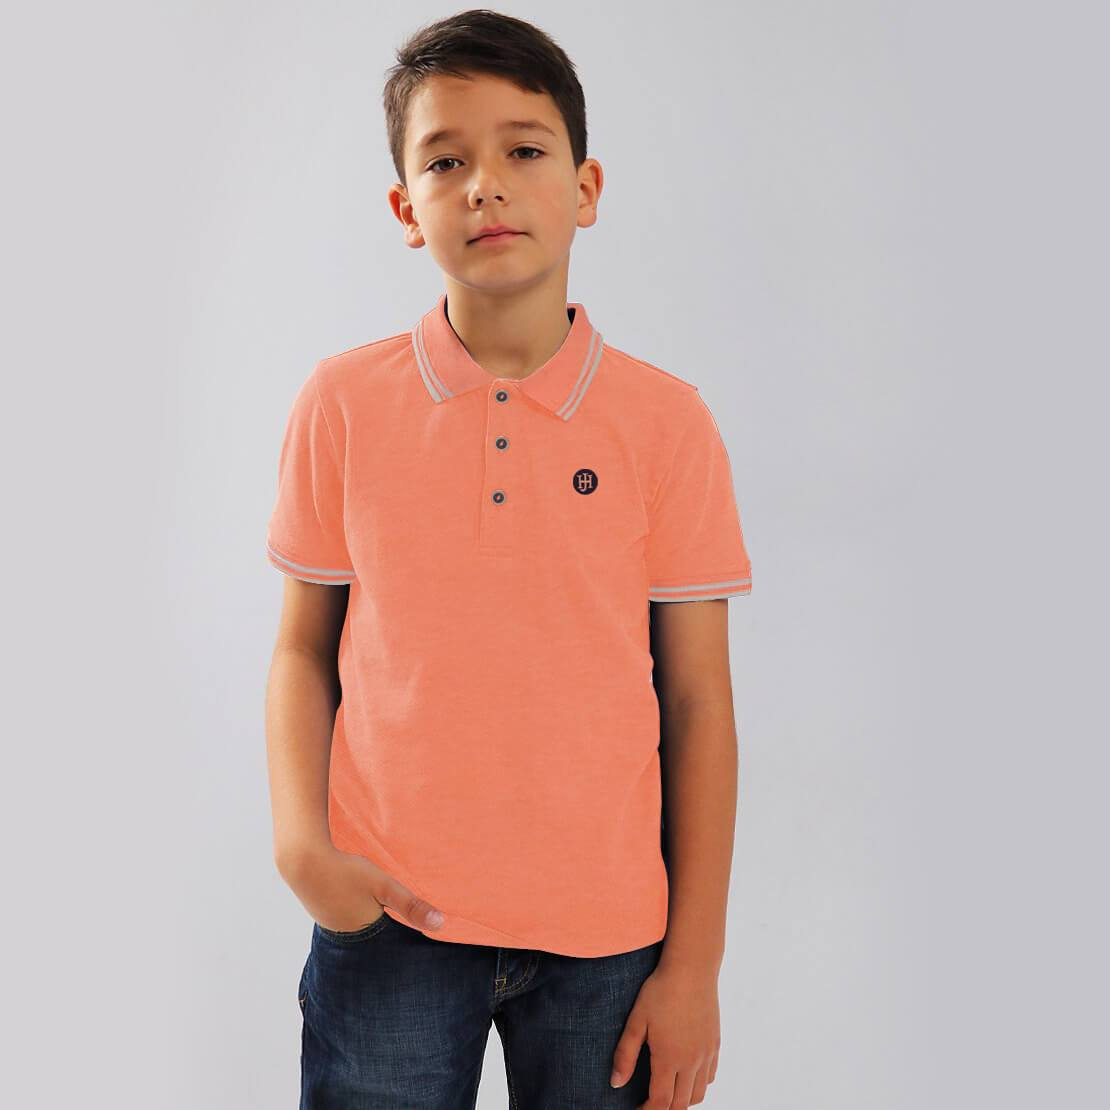 Henry James Kid's Polo Shirt Neon Peach / 4-5 Years Boy's Henry James Flowa Short Sleeve Polo Shirt